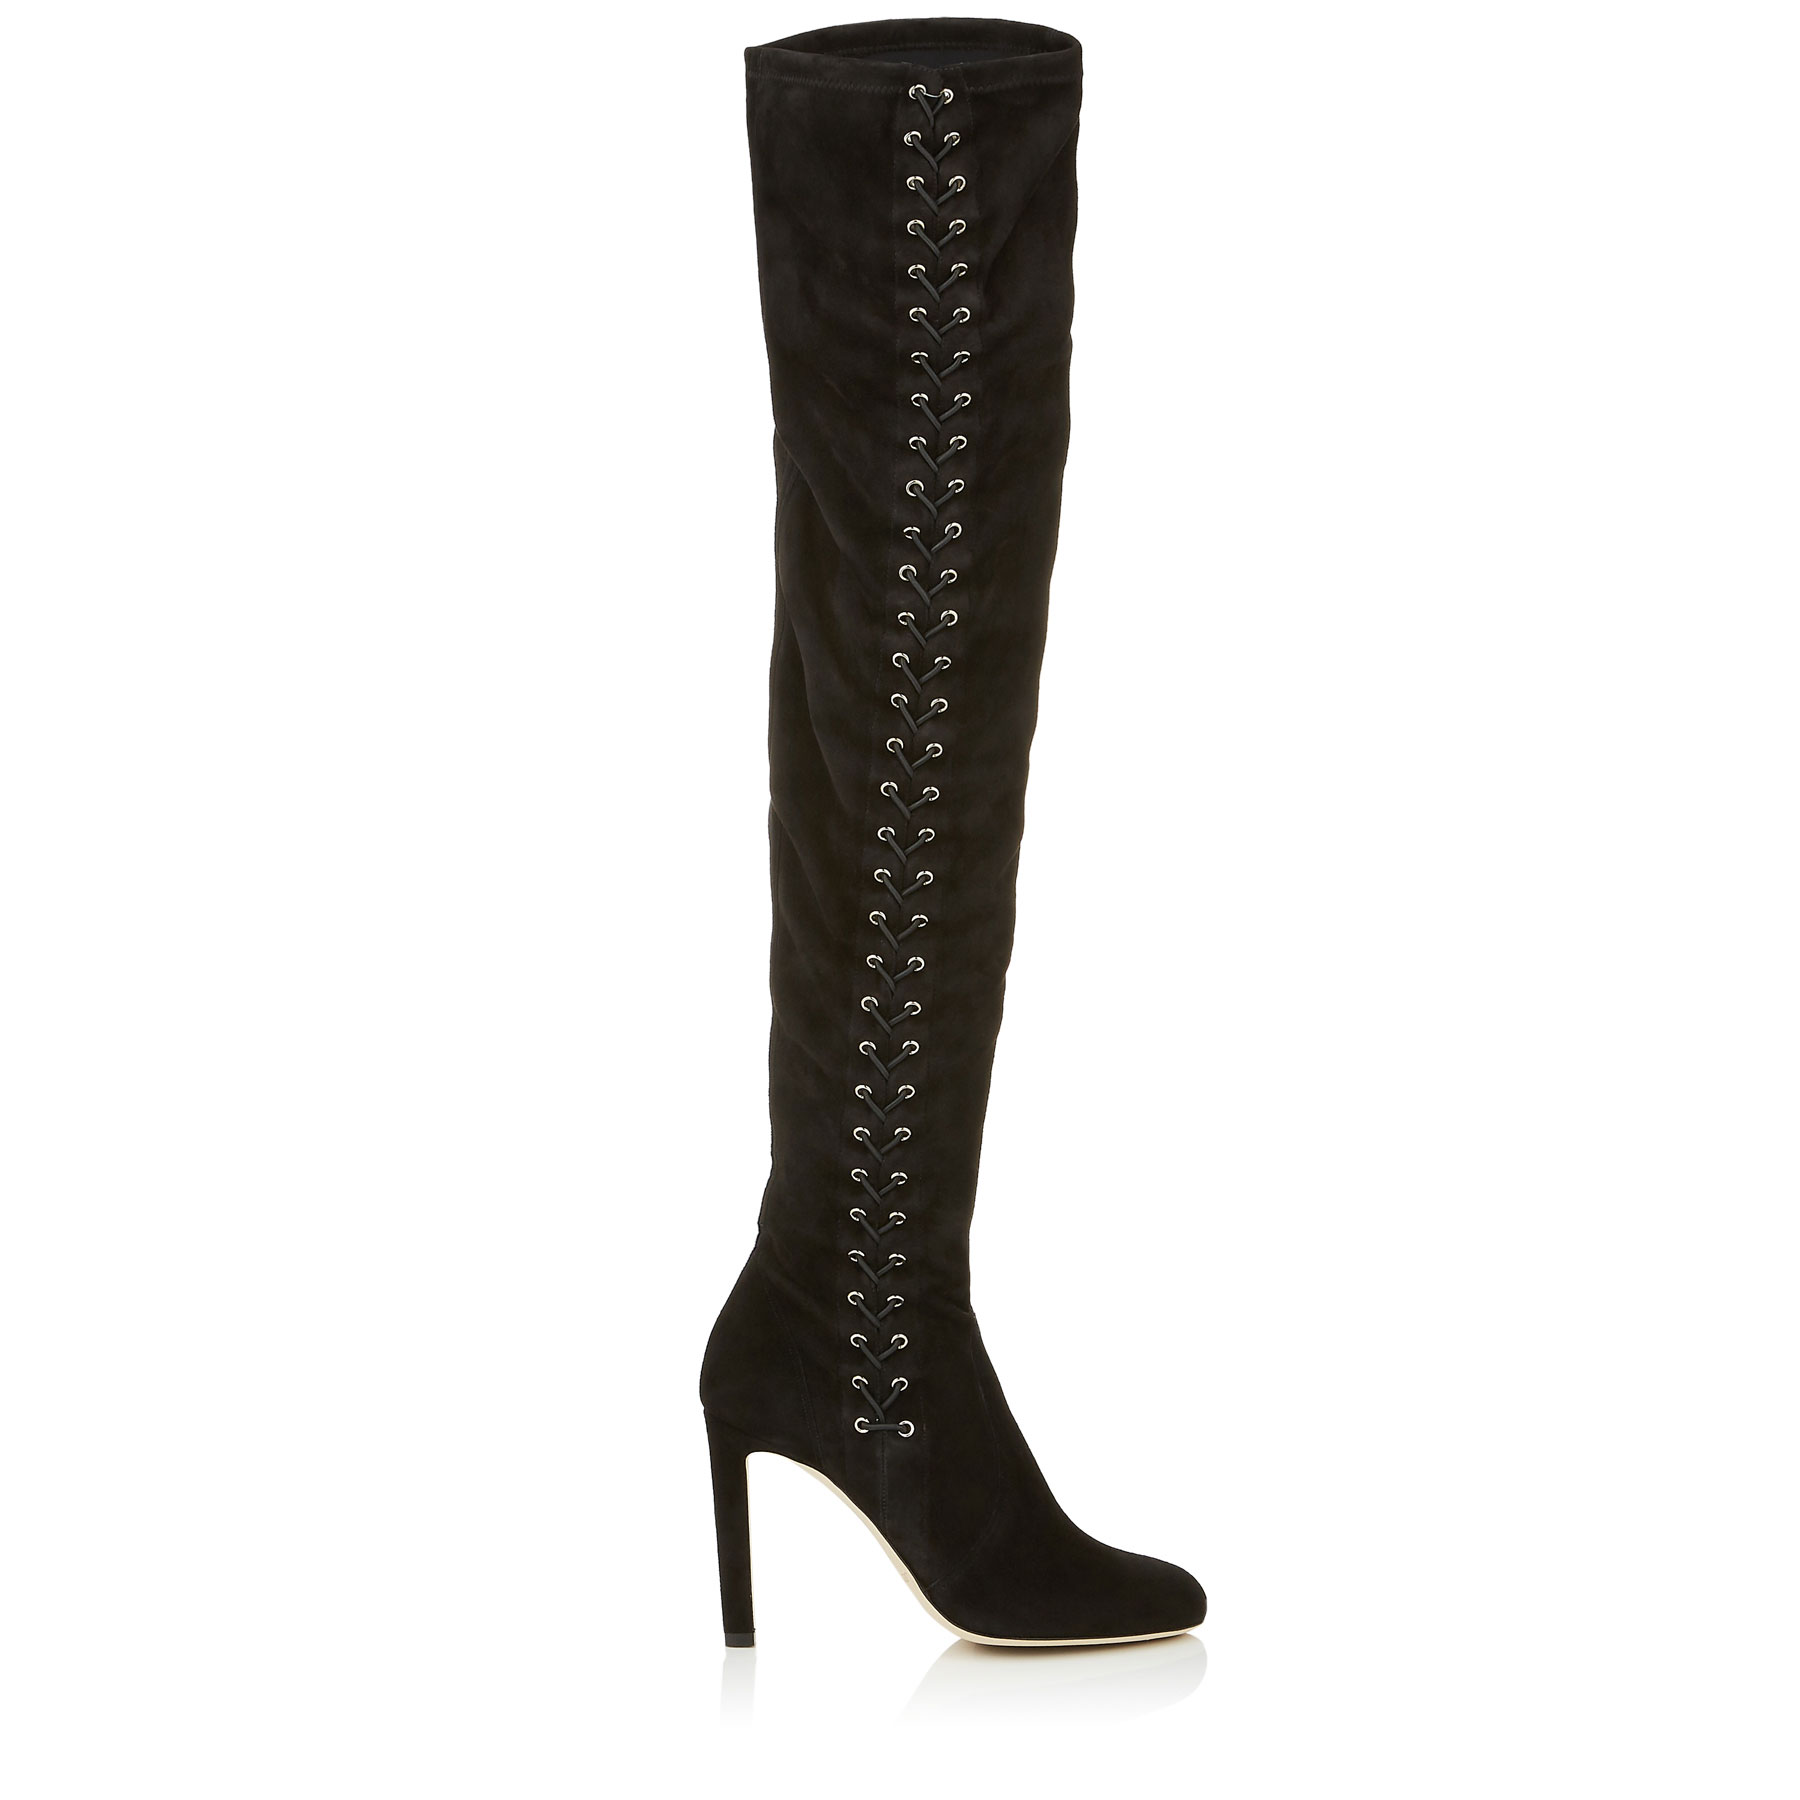 Jimmy chooMarie 100 suede over-the-knee boots P1meu